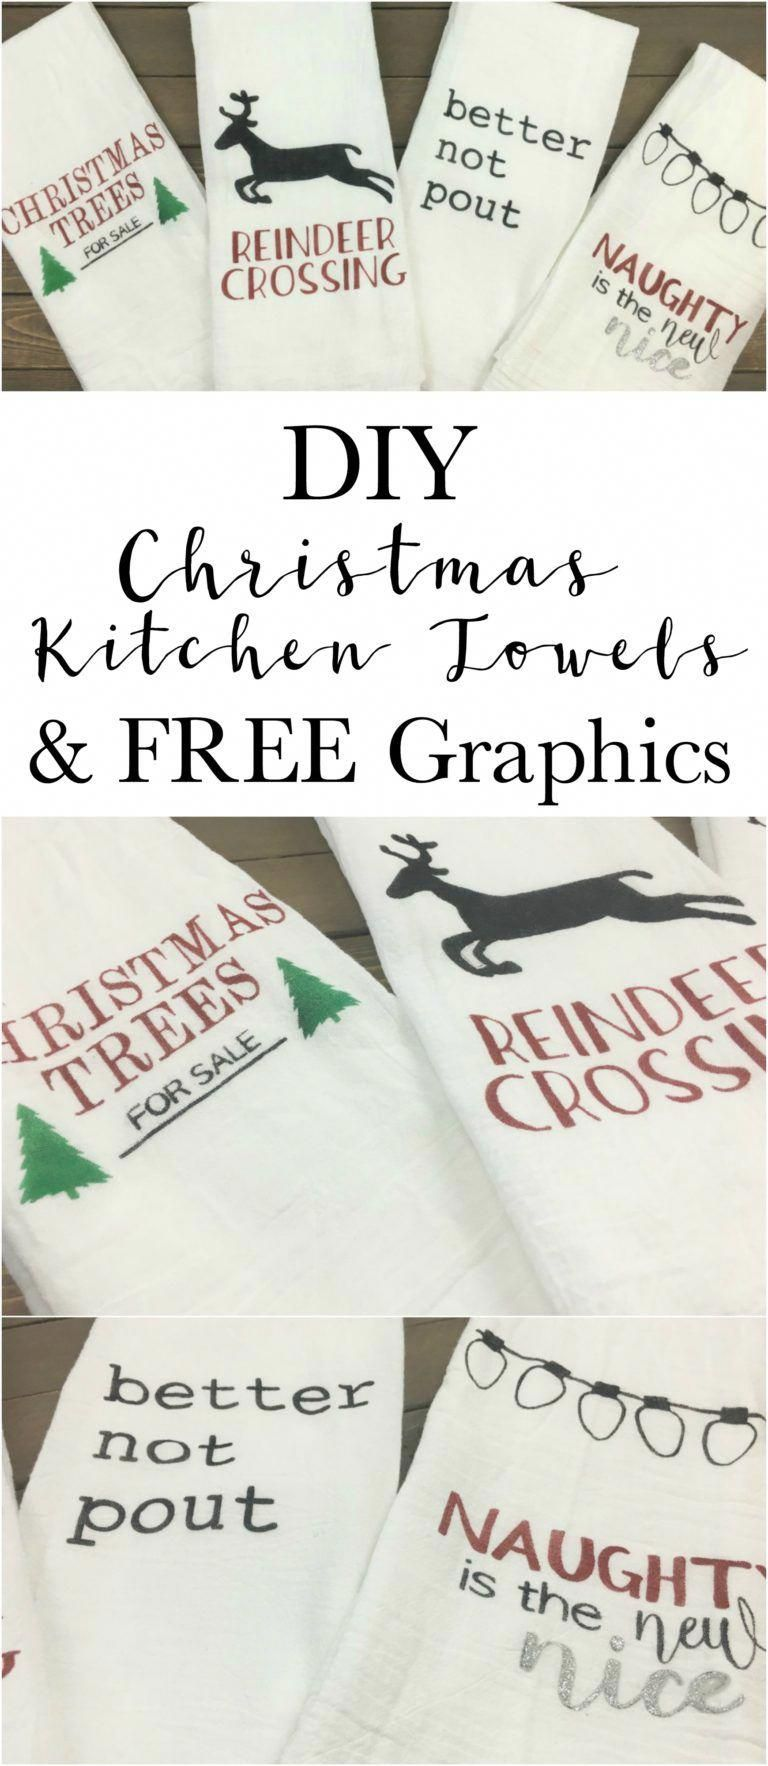 Make your own fun Christmas towels. Super easy, cheap and quick ...